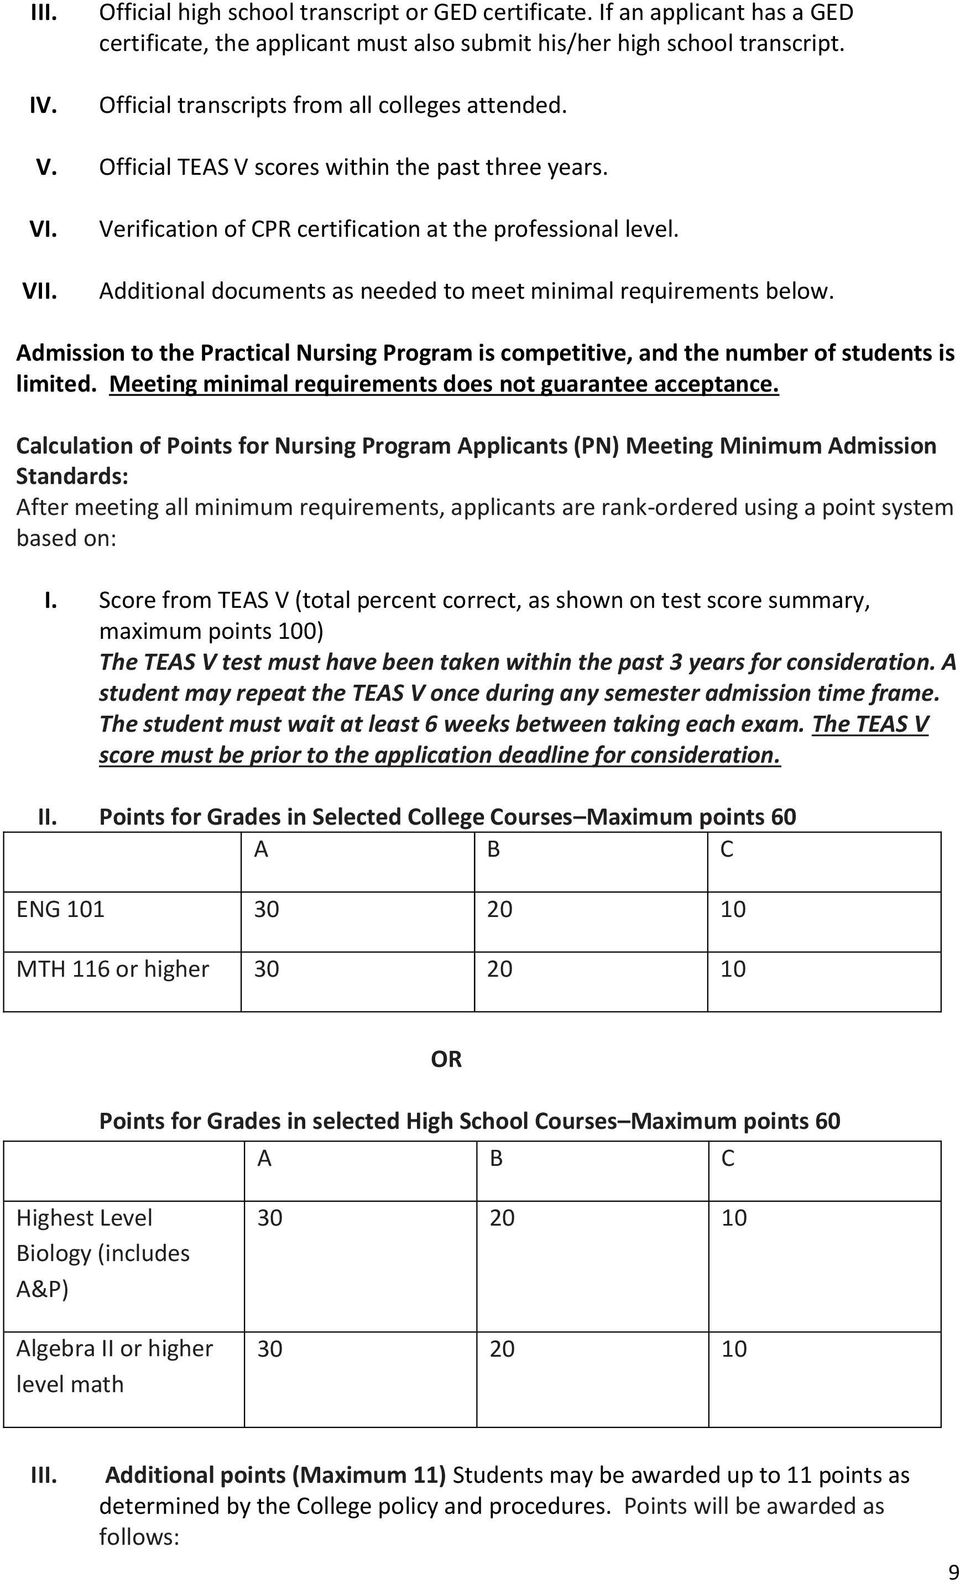 Additional documents as needed to meet minimal requirements below. Admission to the Practical Nursing Program is competitive, and the number of students is limited.